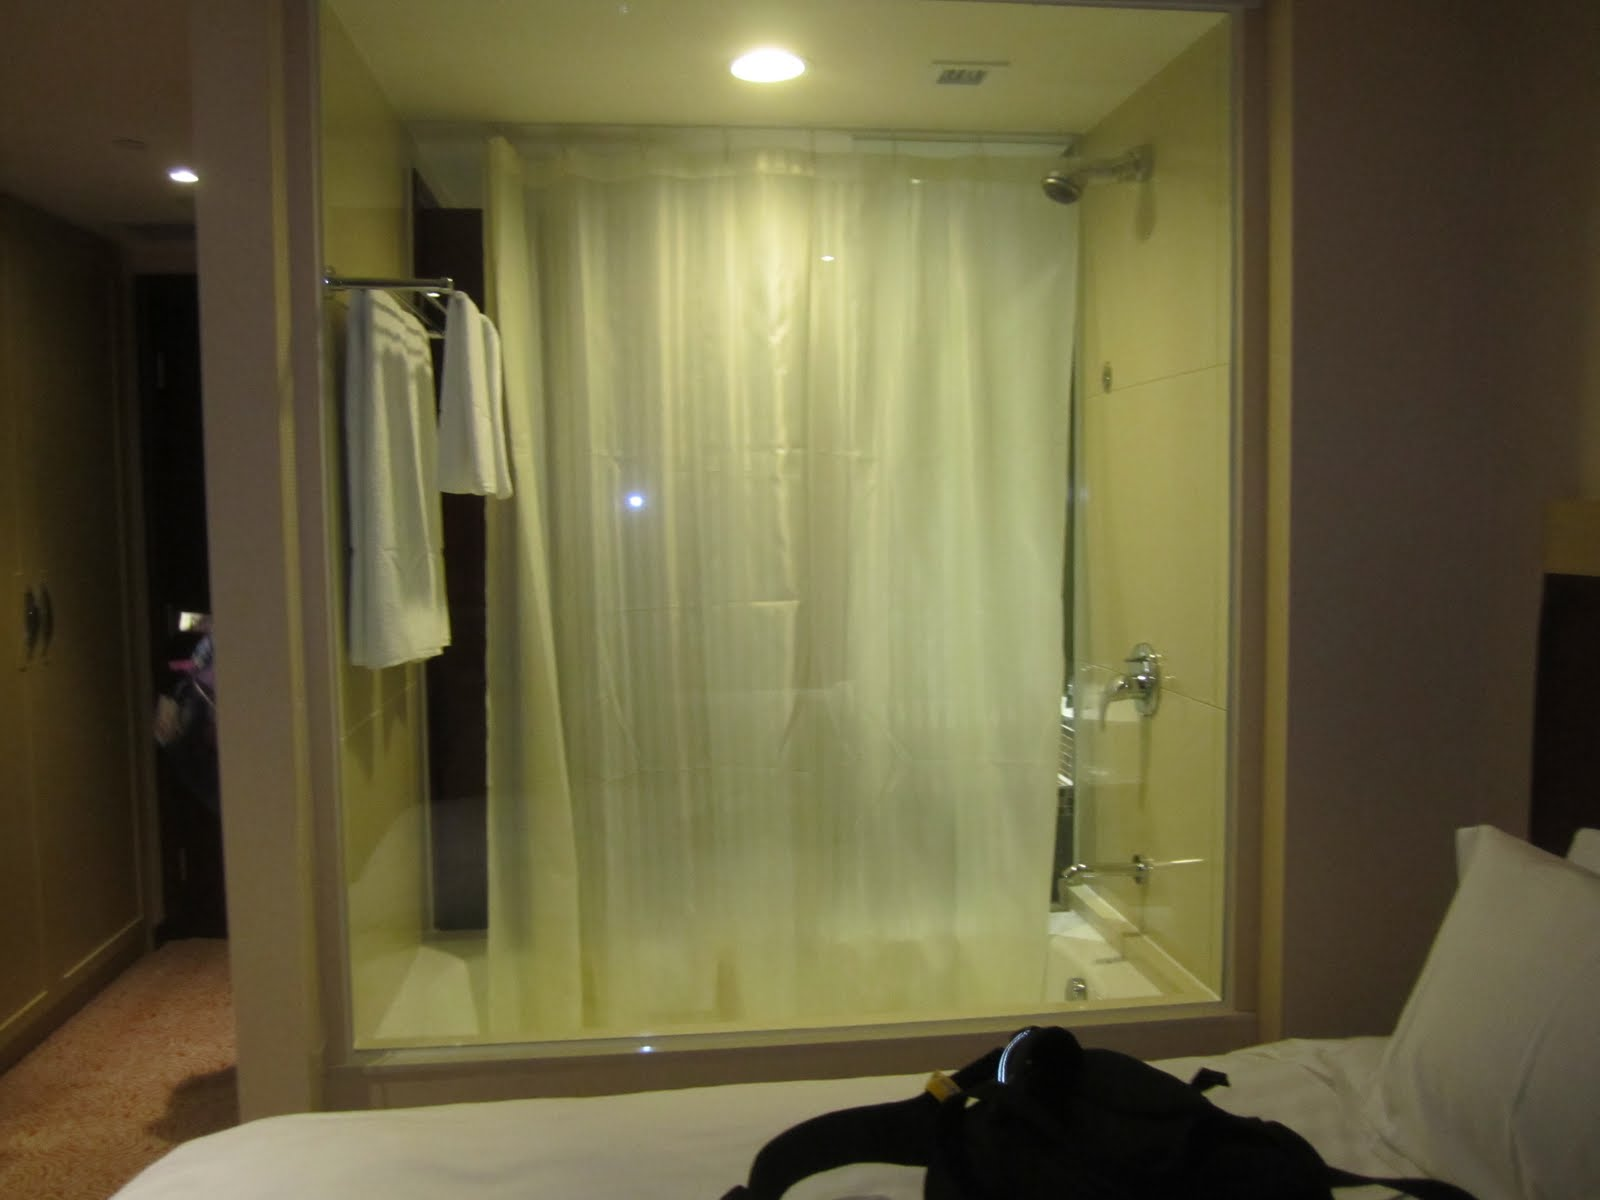 Life 39 s simple pleasures day 1 macau hk for Non see through glass for bathrooms